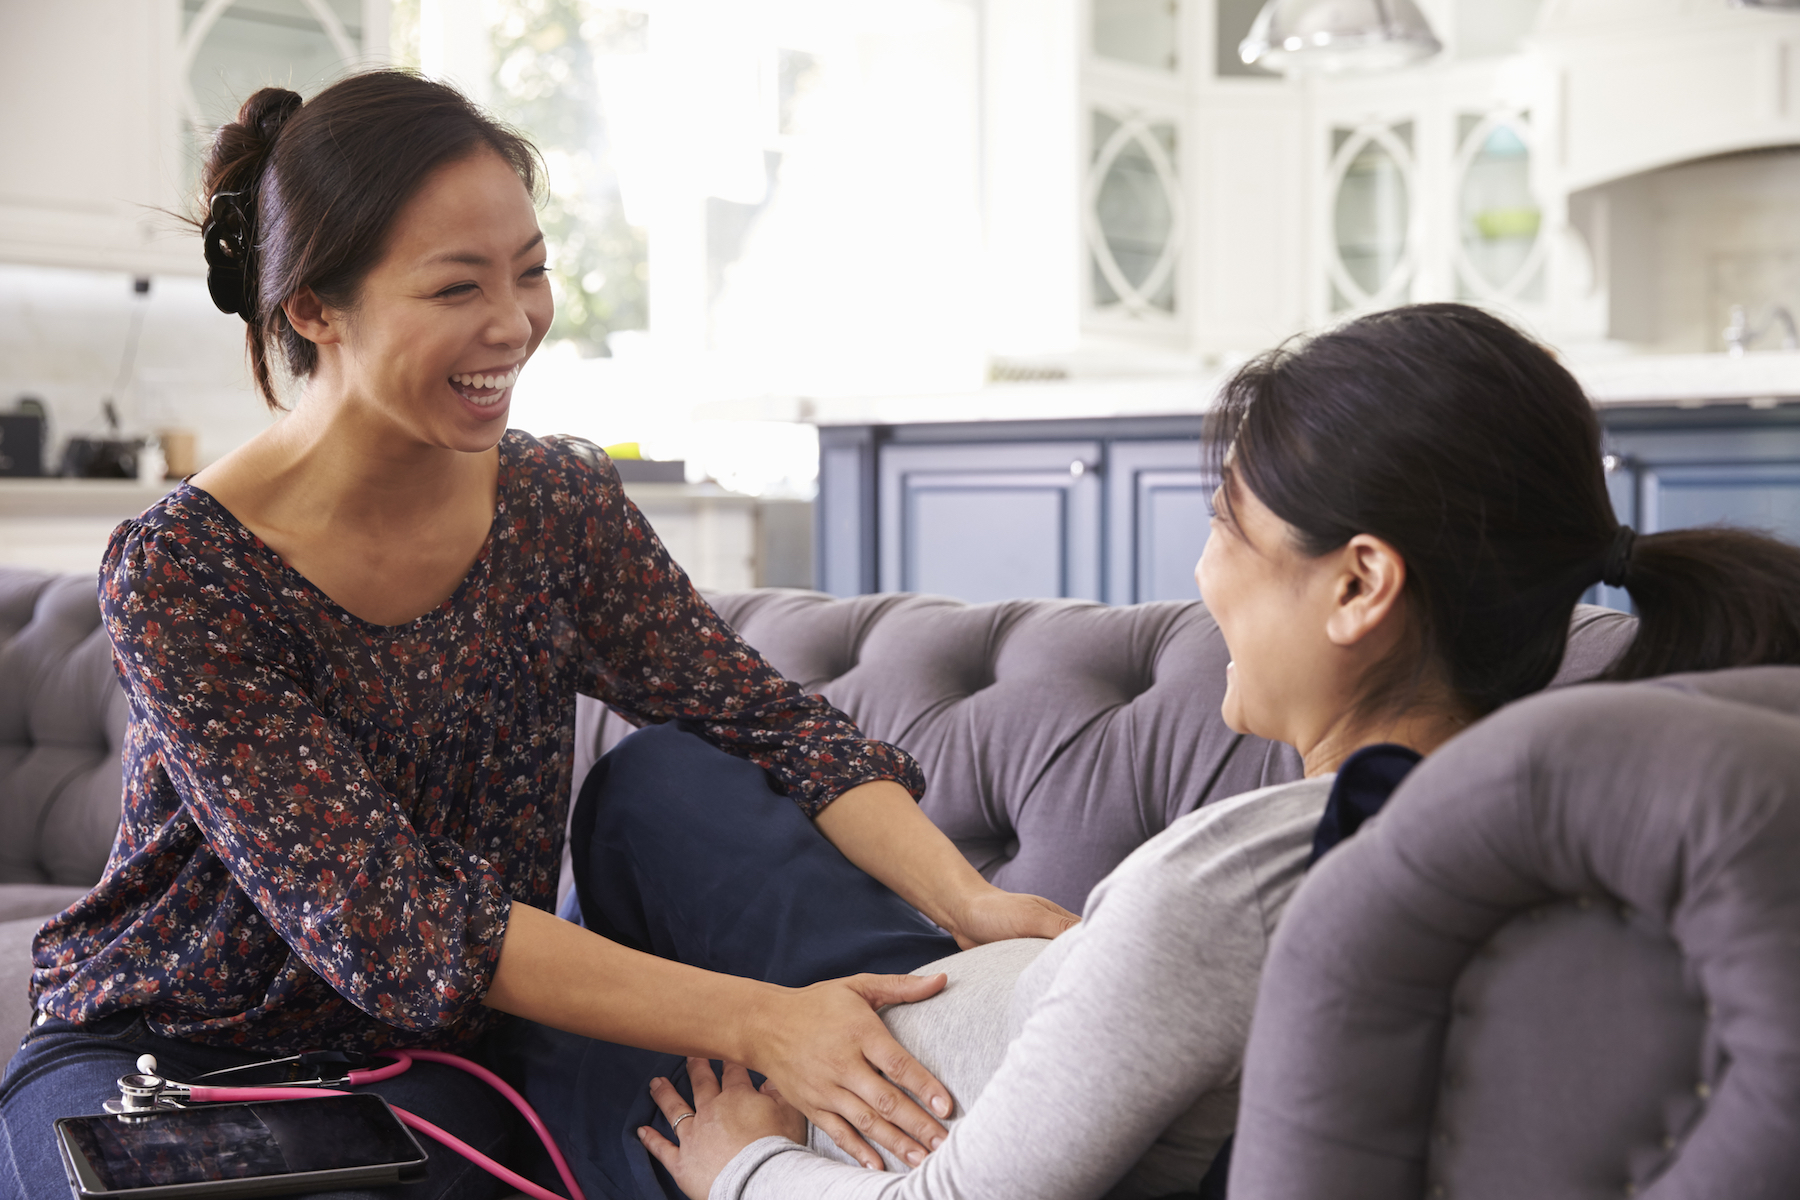 How a doula does certified help professionally in child birth?